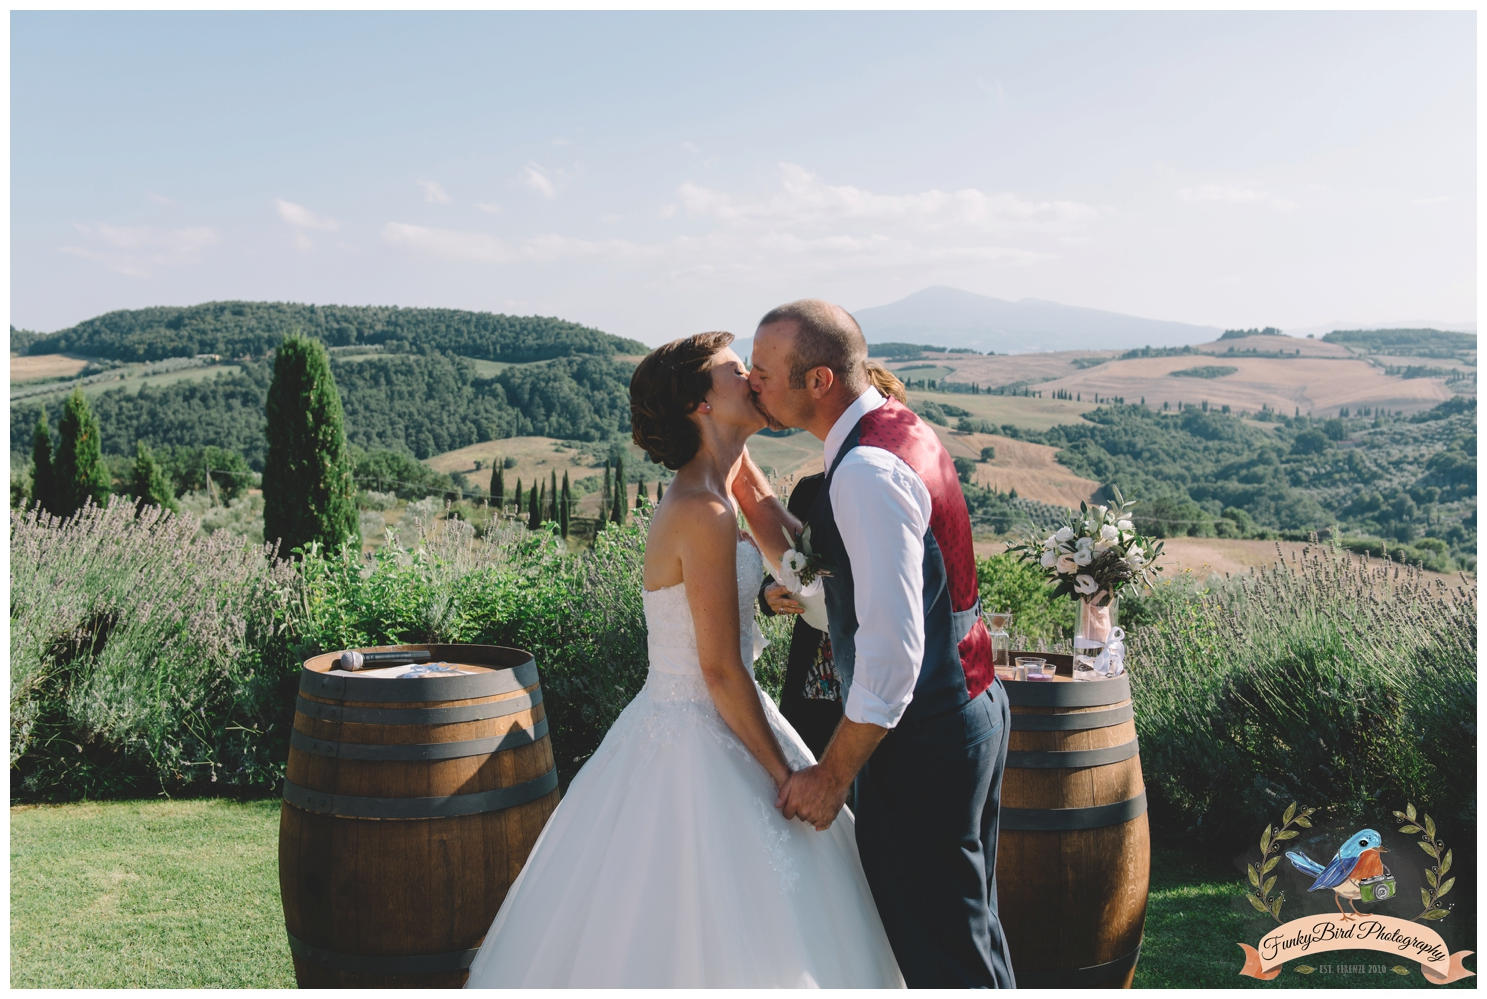 Wedding_Photographer_Tuscany_Italy_0018.jpg